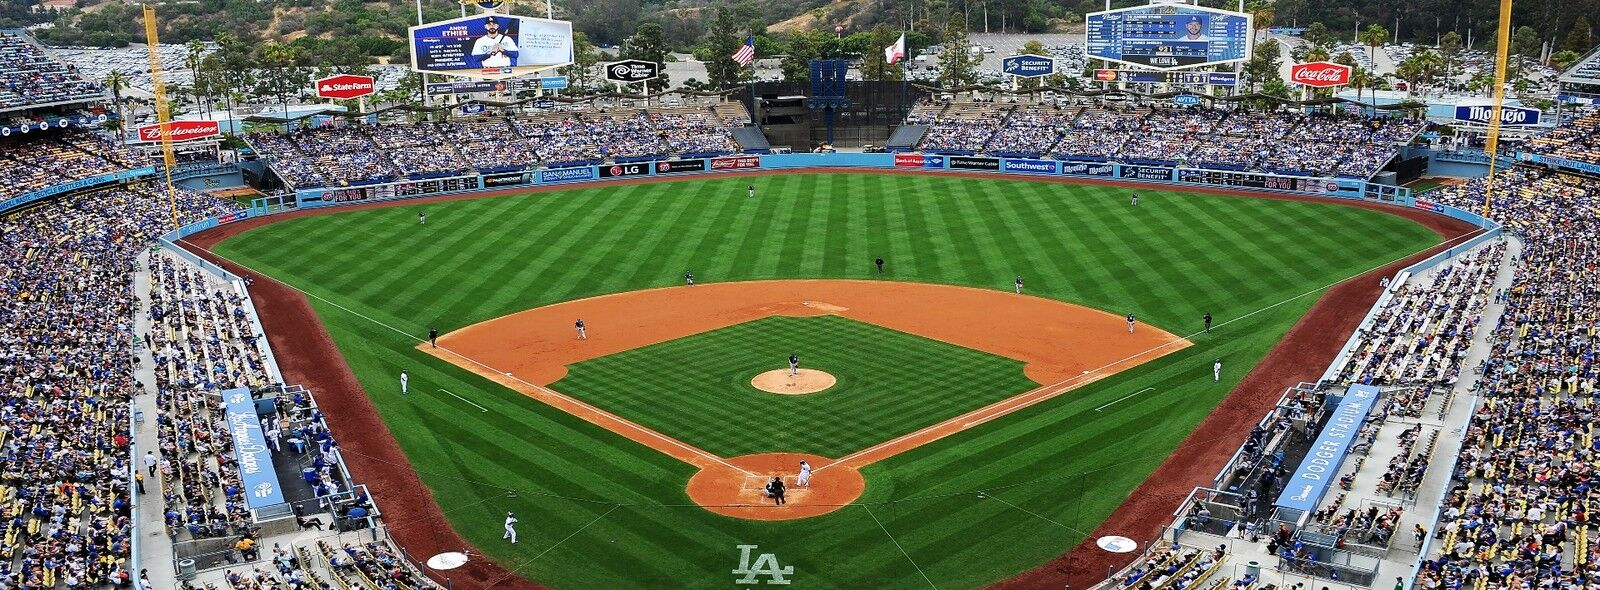 Milwaukee Brewers at Los Angeles Dodgers Tickets (Friday Night Fireworks)